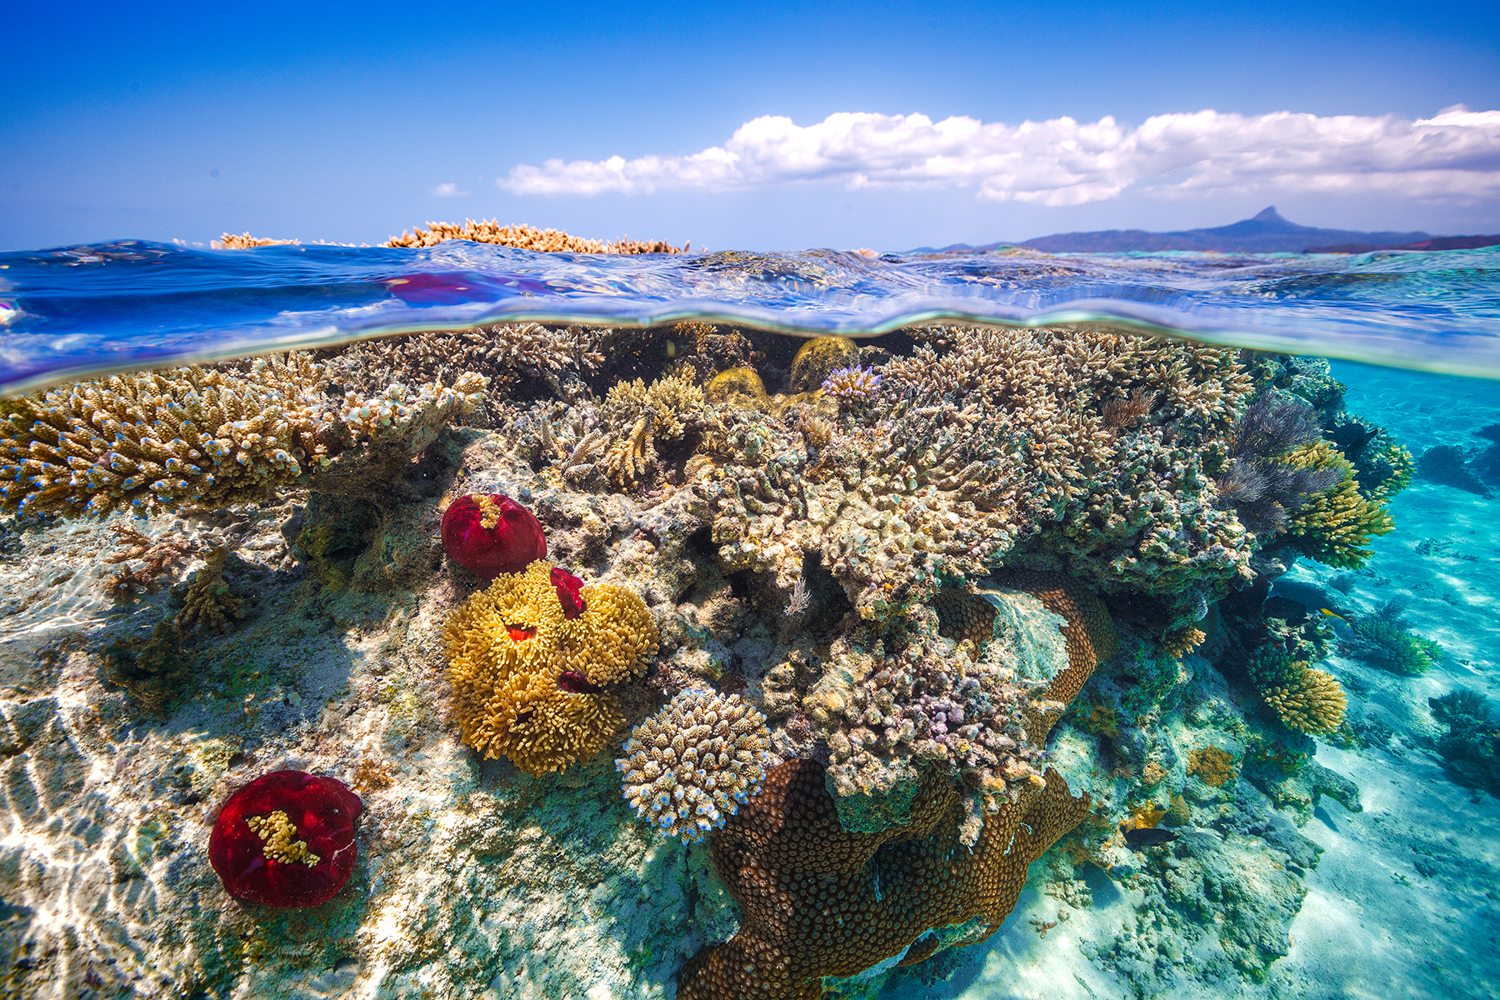 Fotomurale Mayotte - the Reef